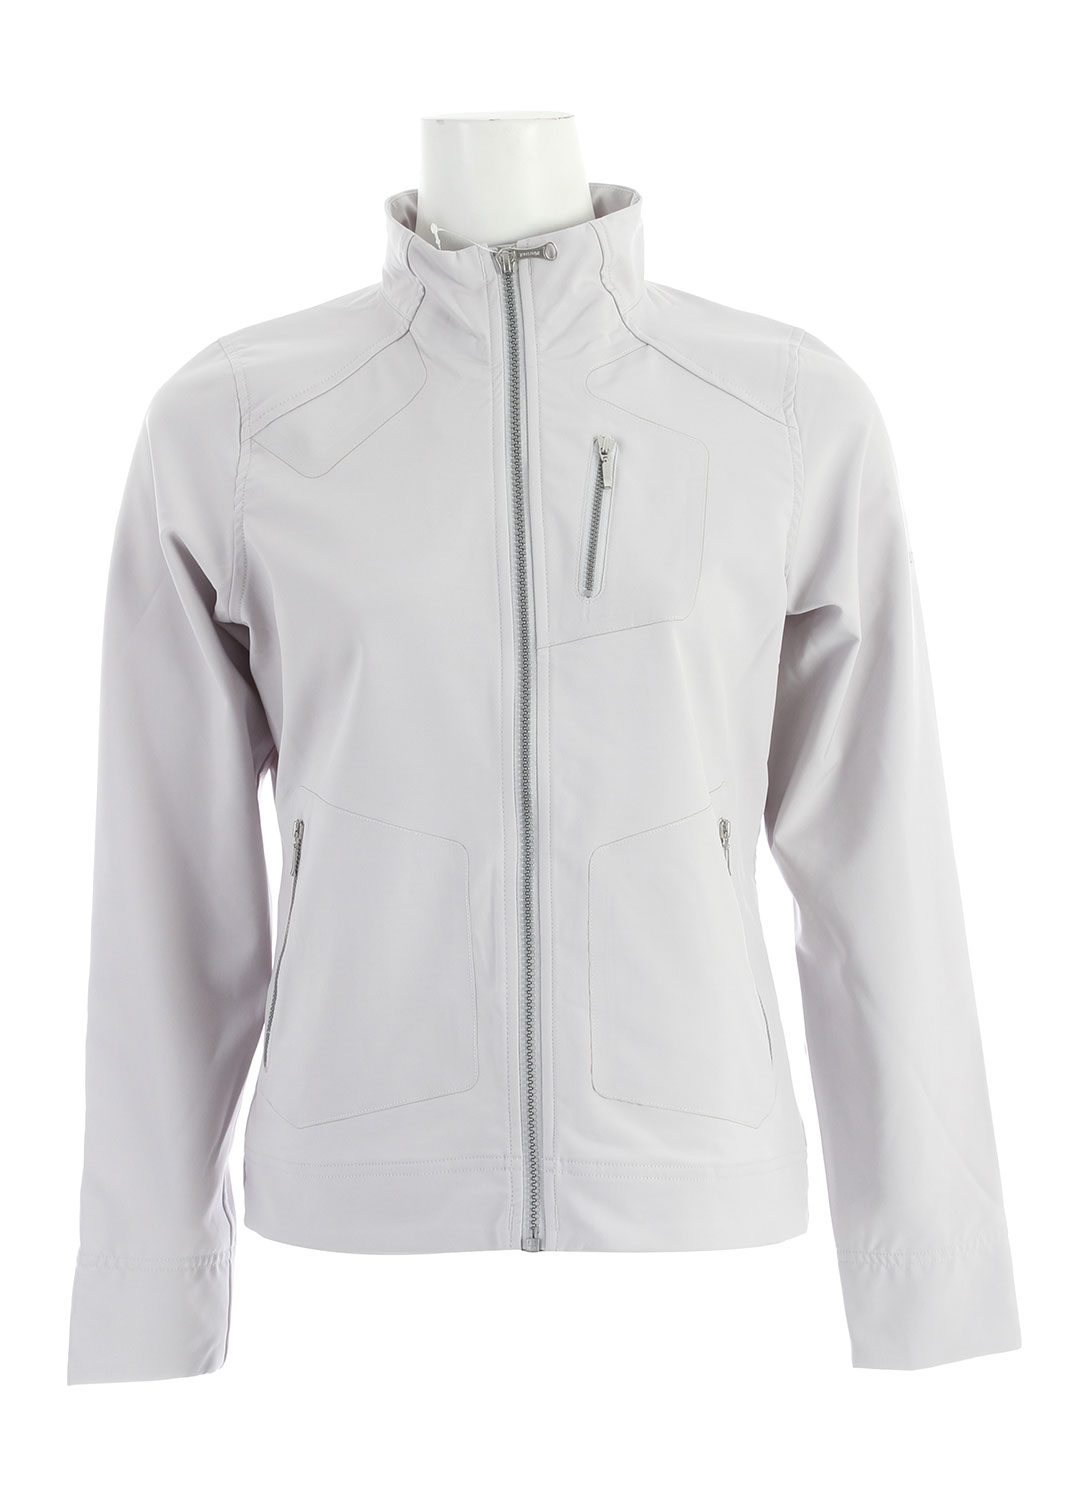 Marmot Levity Jacket Platinum - $91.95